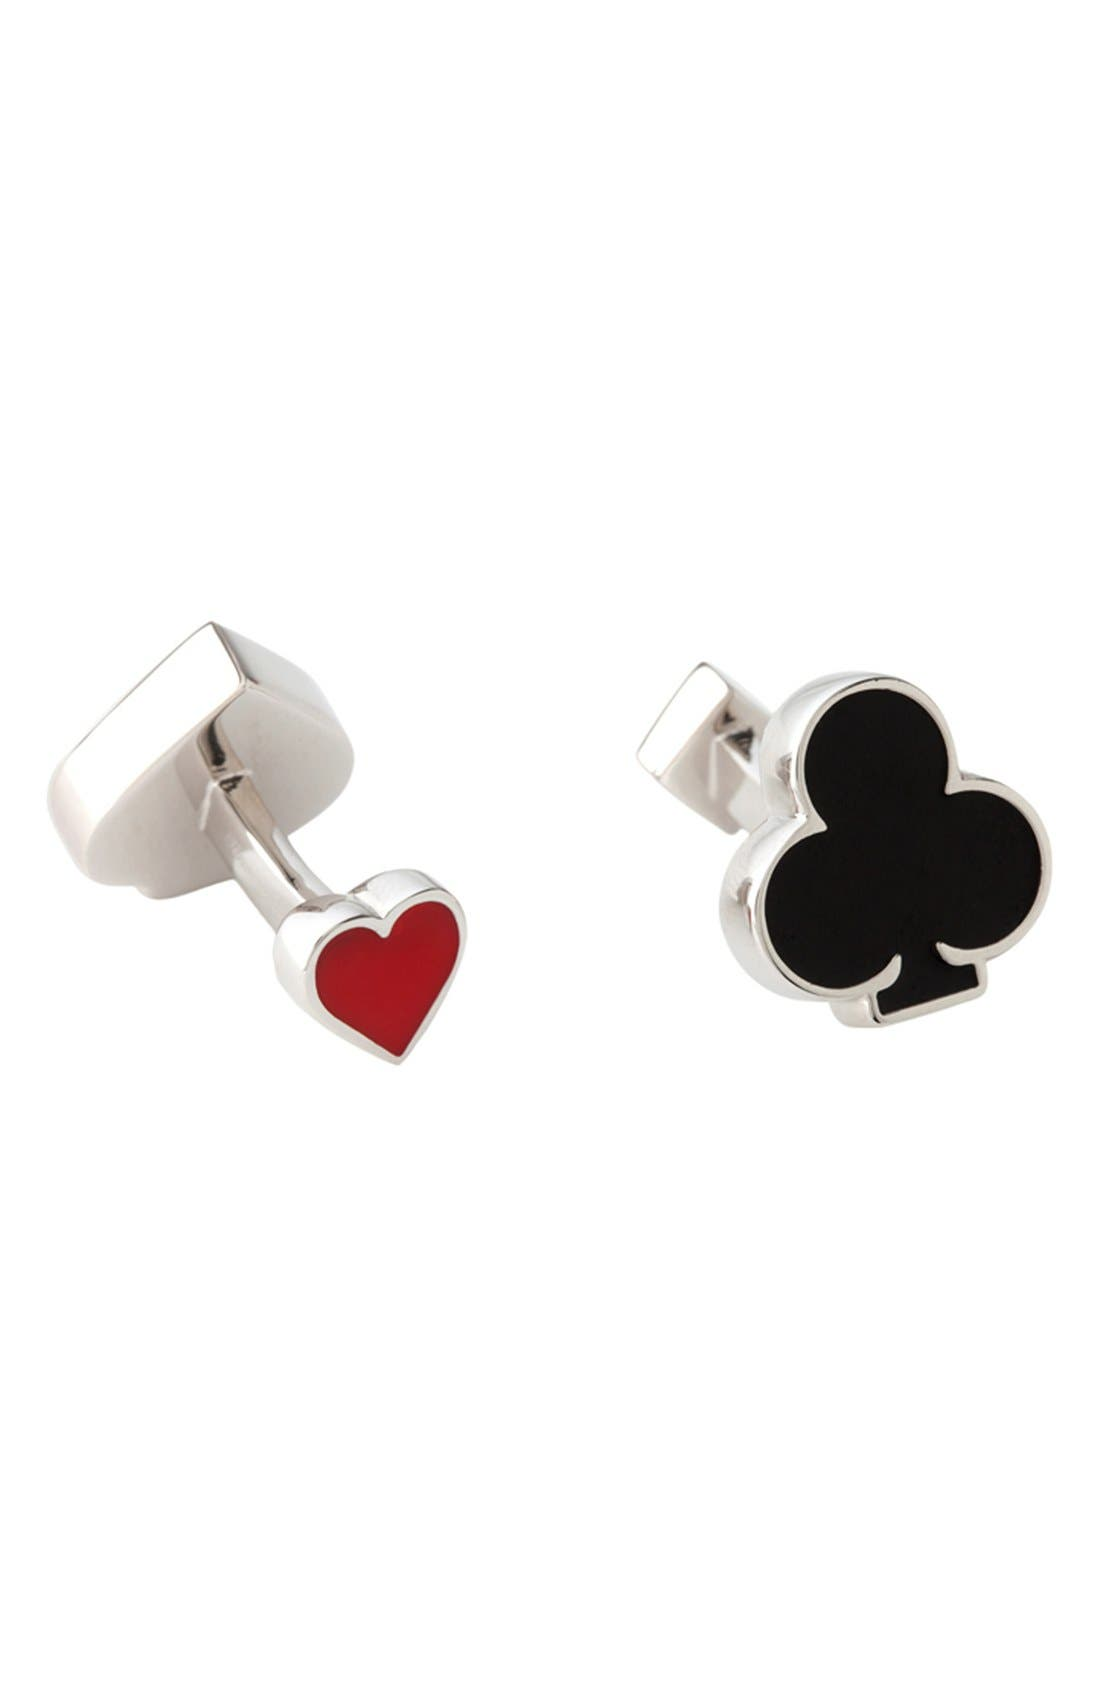 Tommy Bahama Card Suit Cuff Links